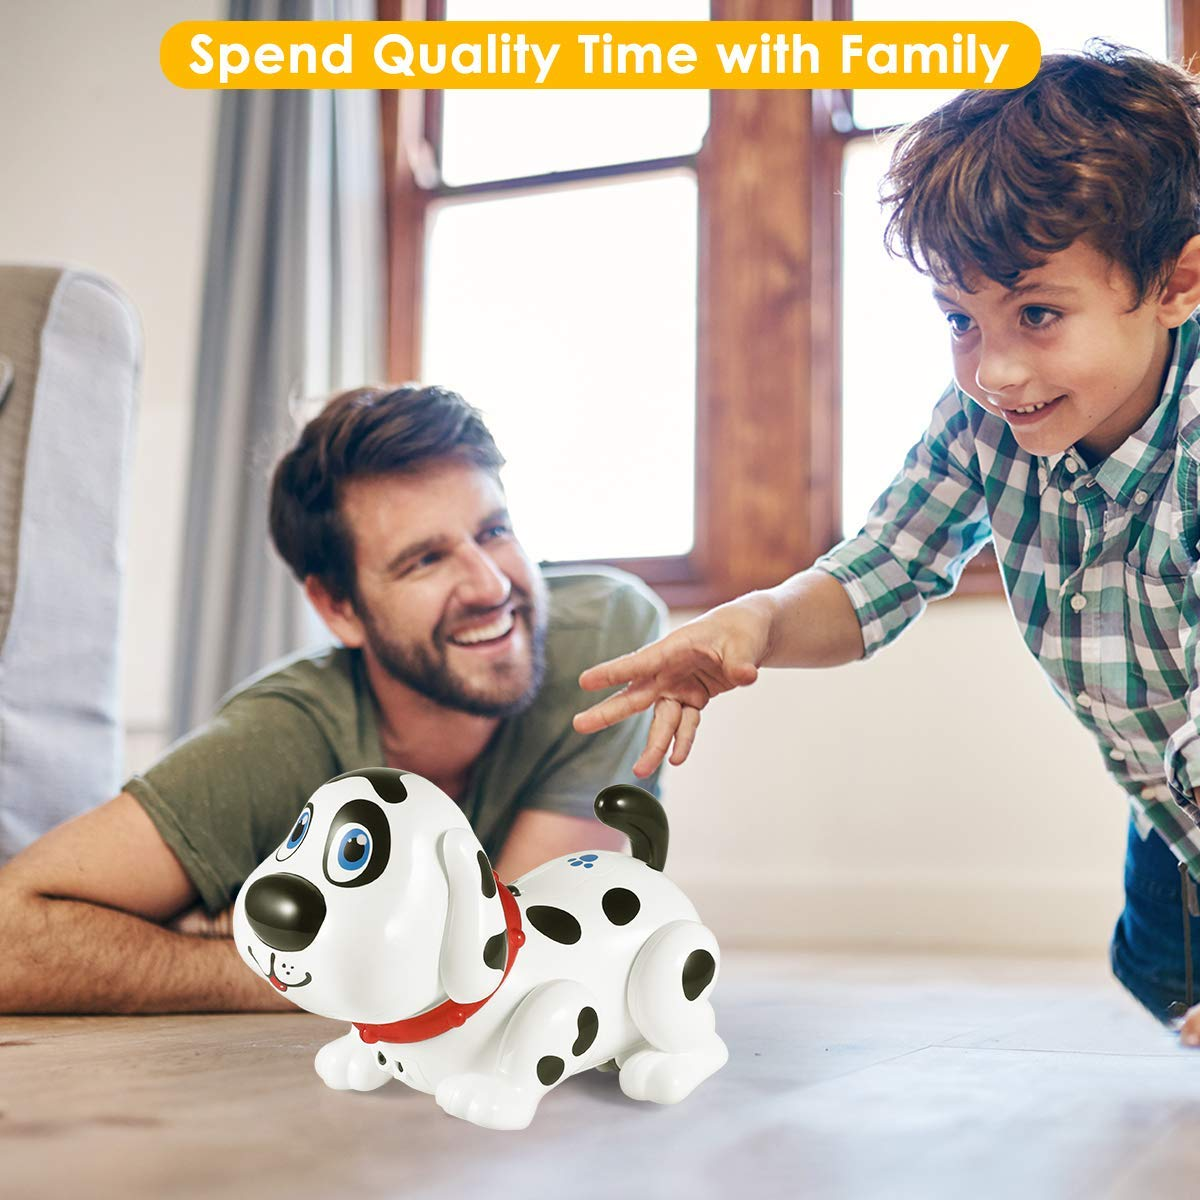 Electronic Dog,Interactive Puppy, Touch with Chasing, Walking, Dancing, Music, Interactive and Induction Toys for Boys or Girls Birthday Gifts by MIGO (Image #8)